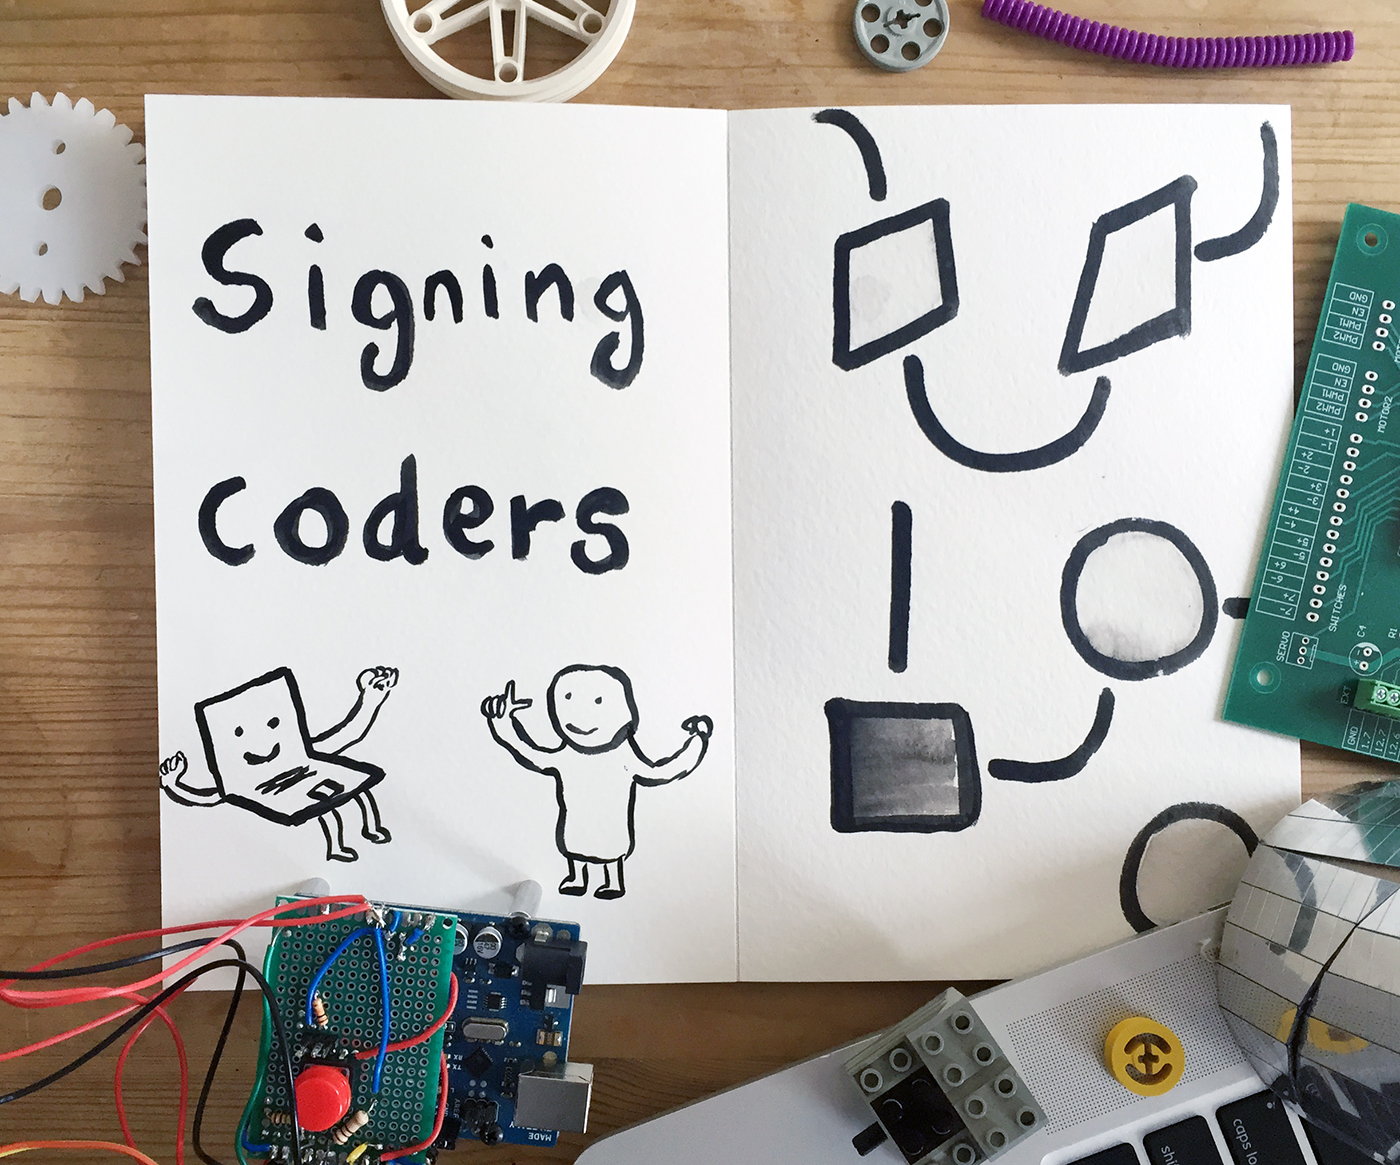 SigningCoders